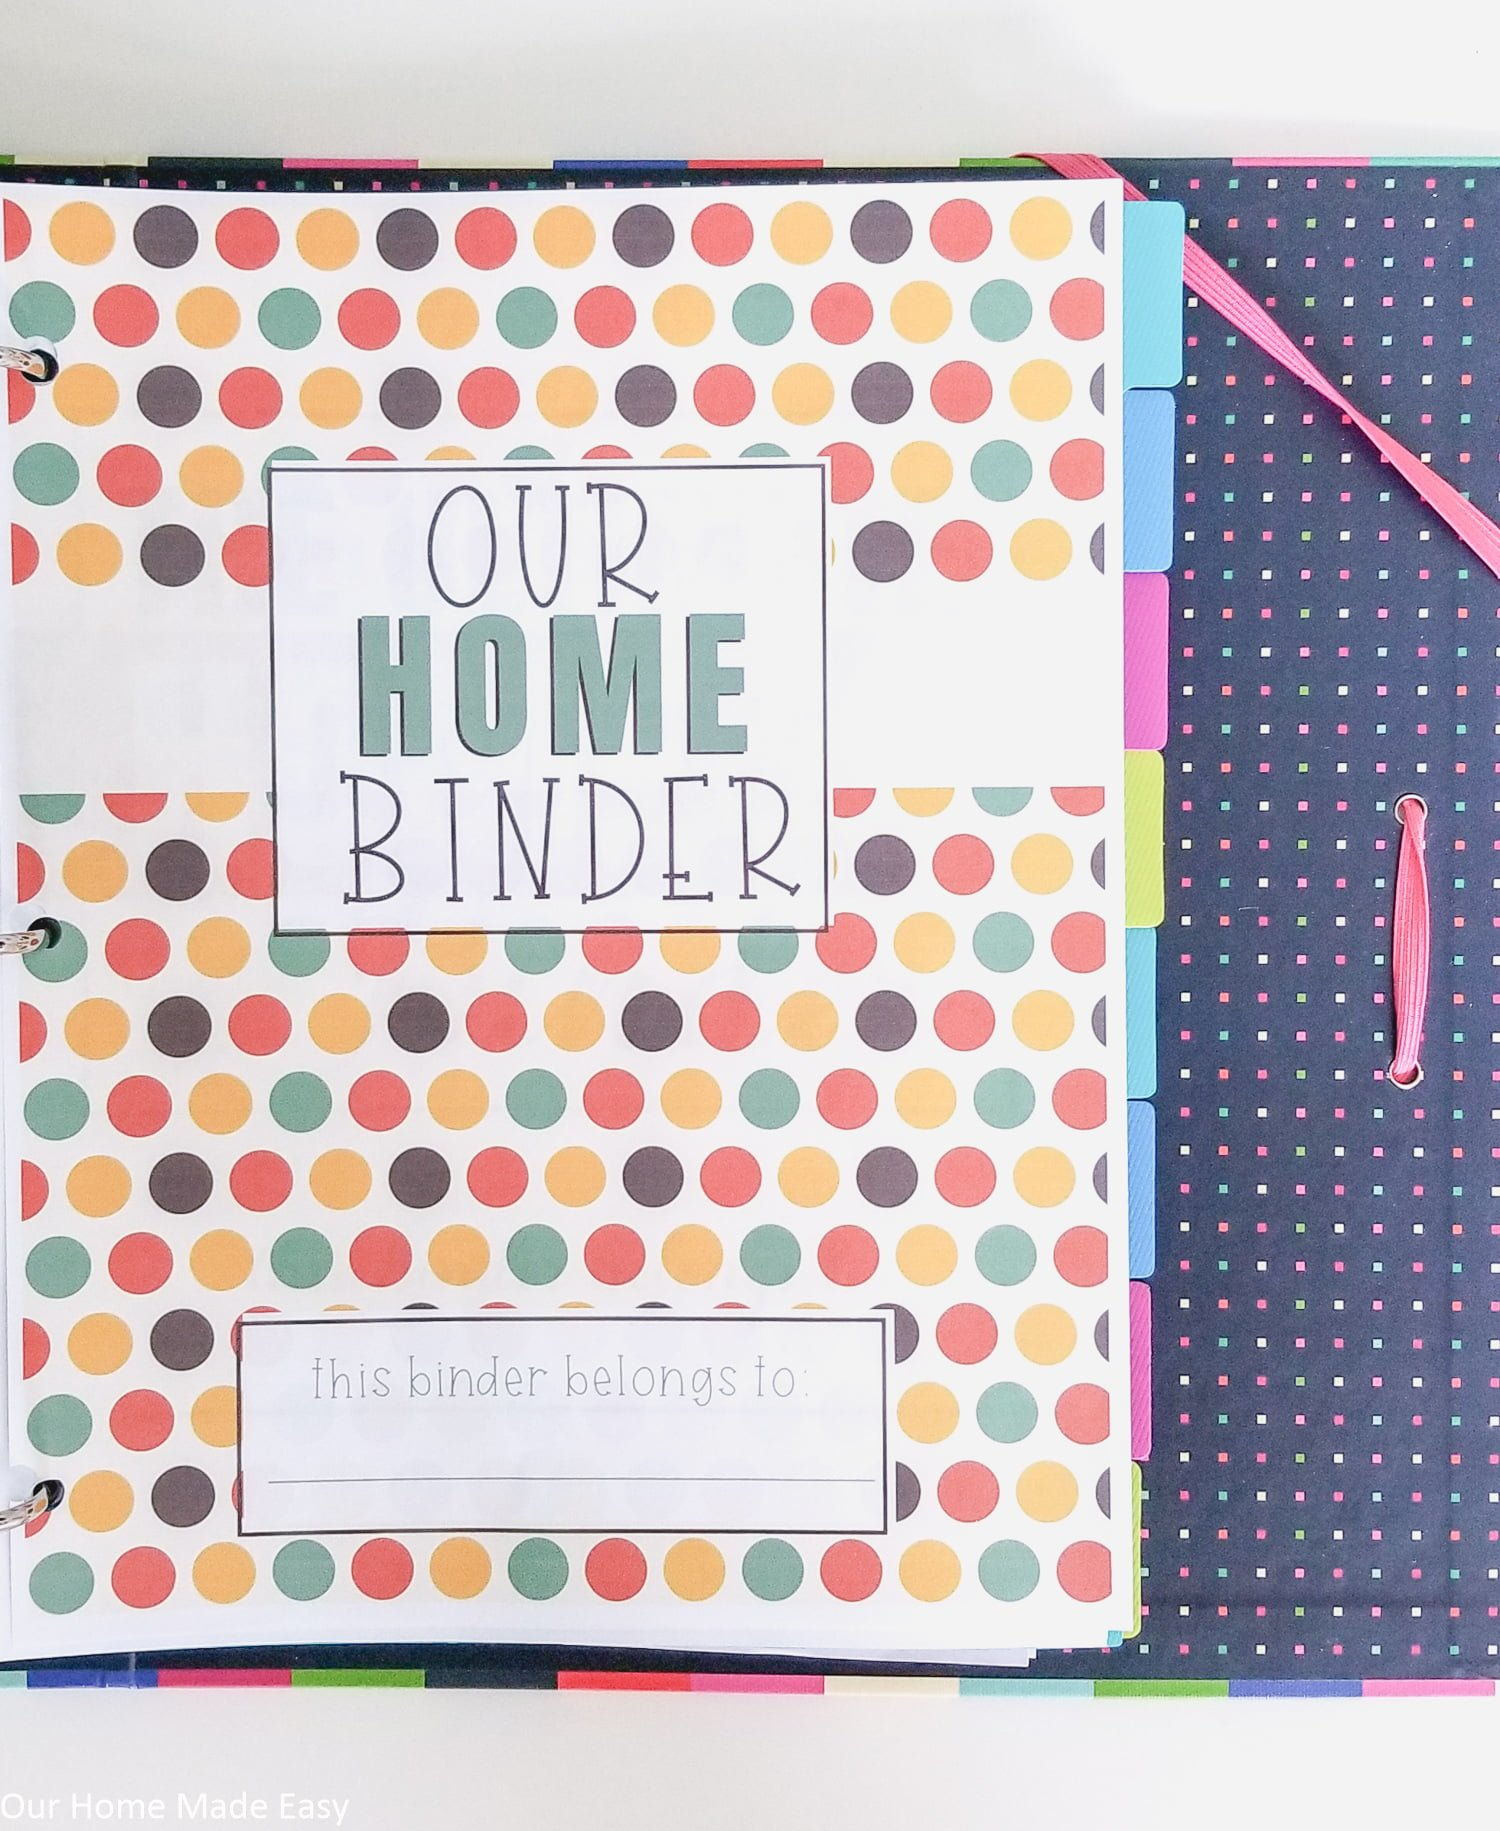 Fall is approaching, prep your home binder for the season with these free autumn home binder covers